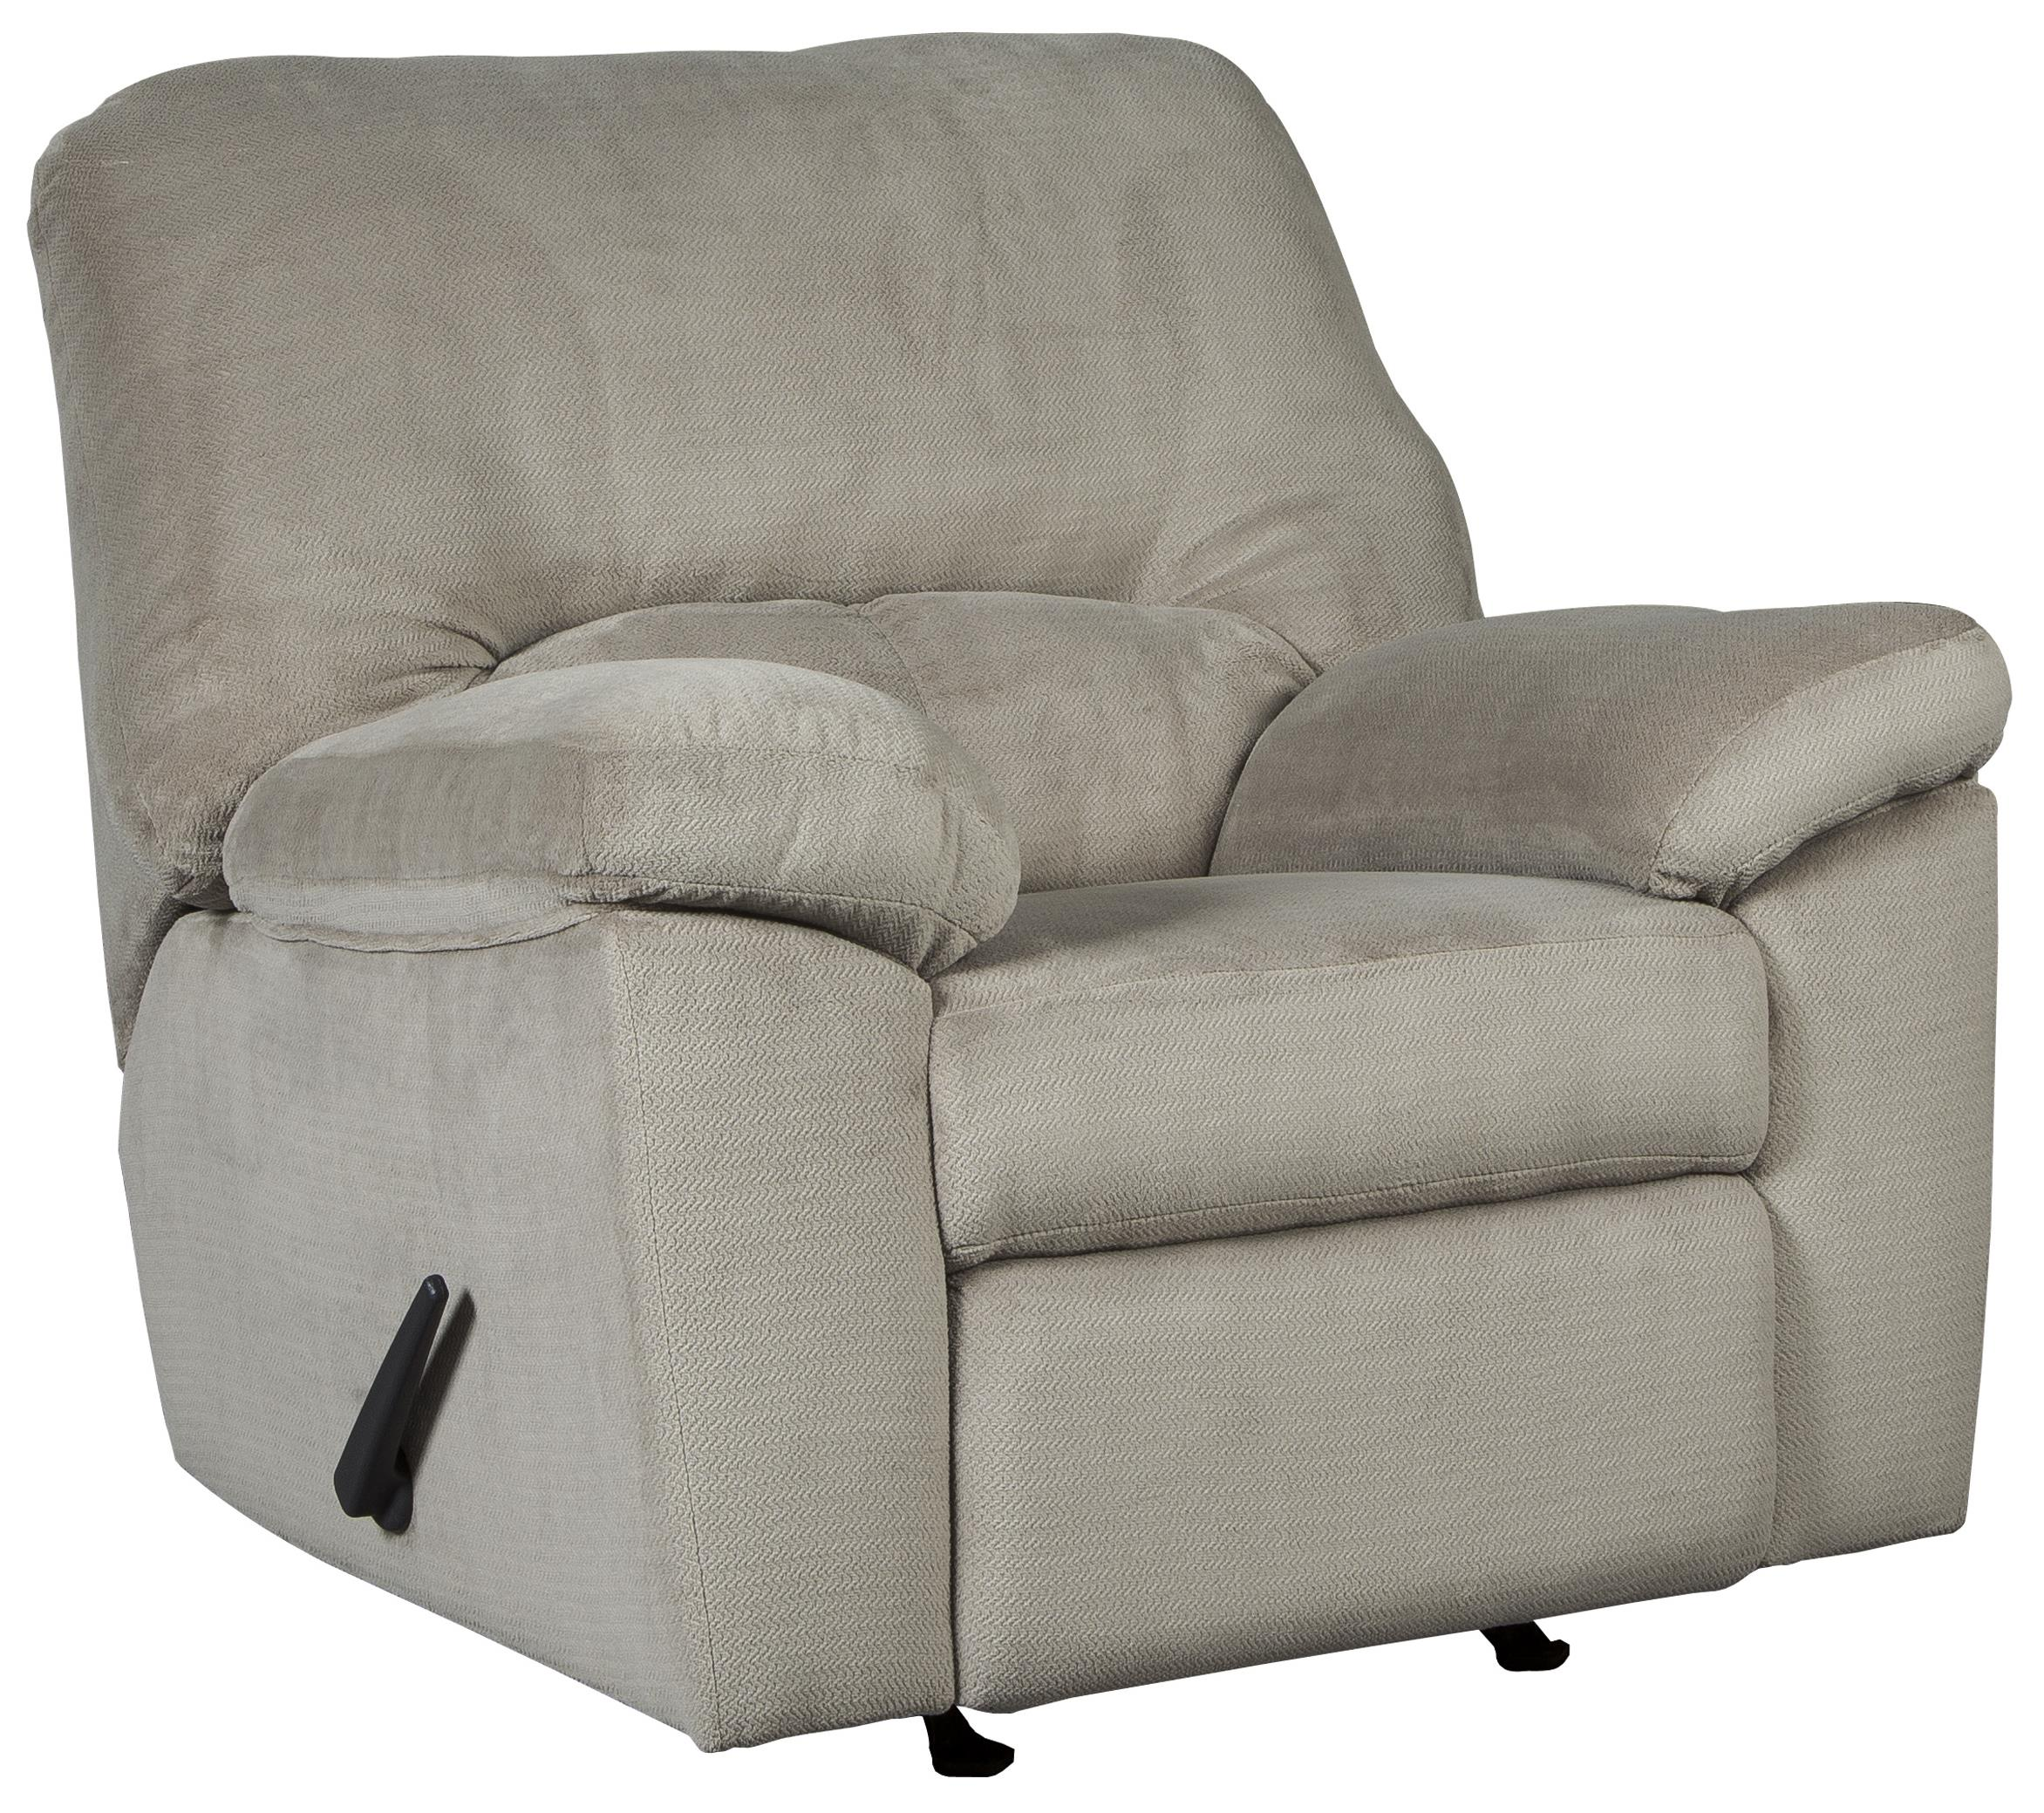 Signature Design by Ashley Dailey Rocker Recliner - Item Number: 9540125